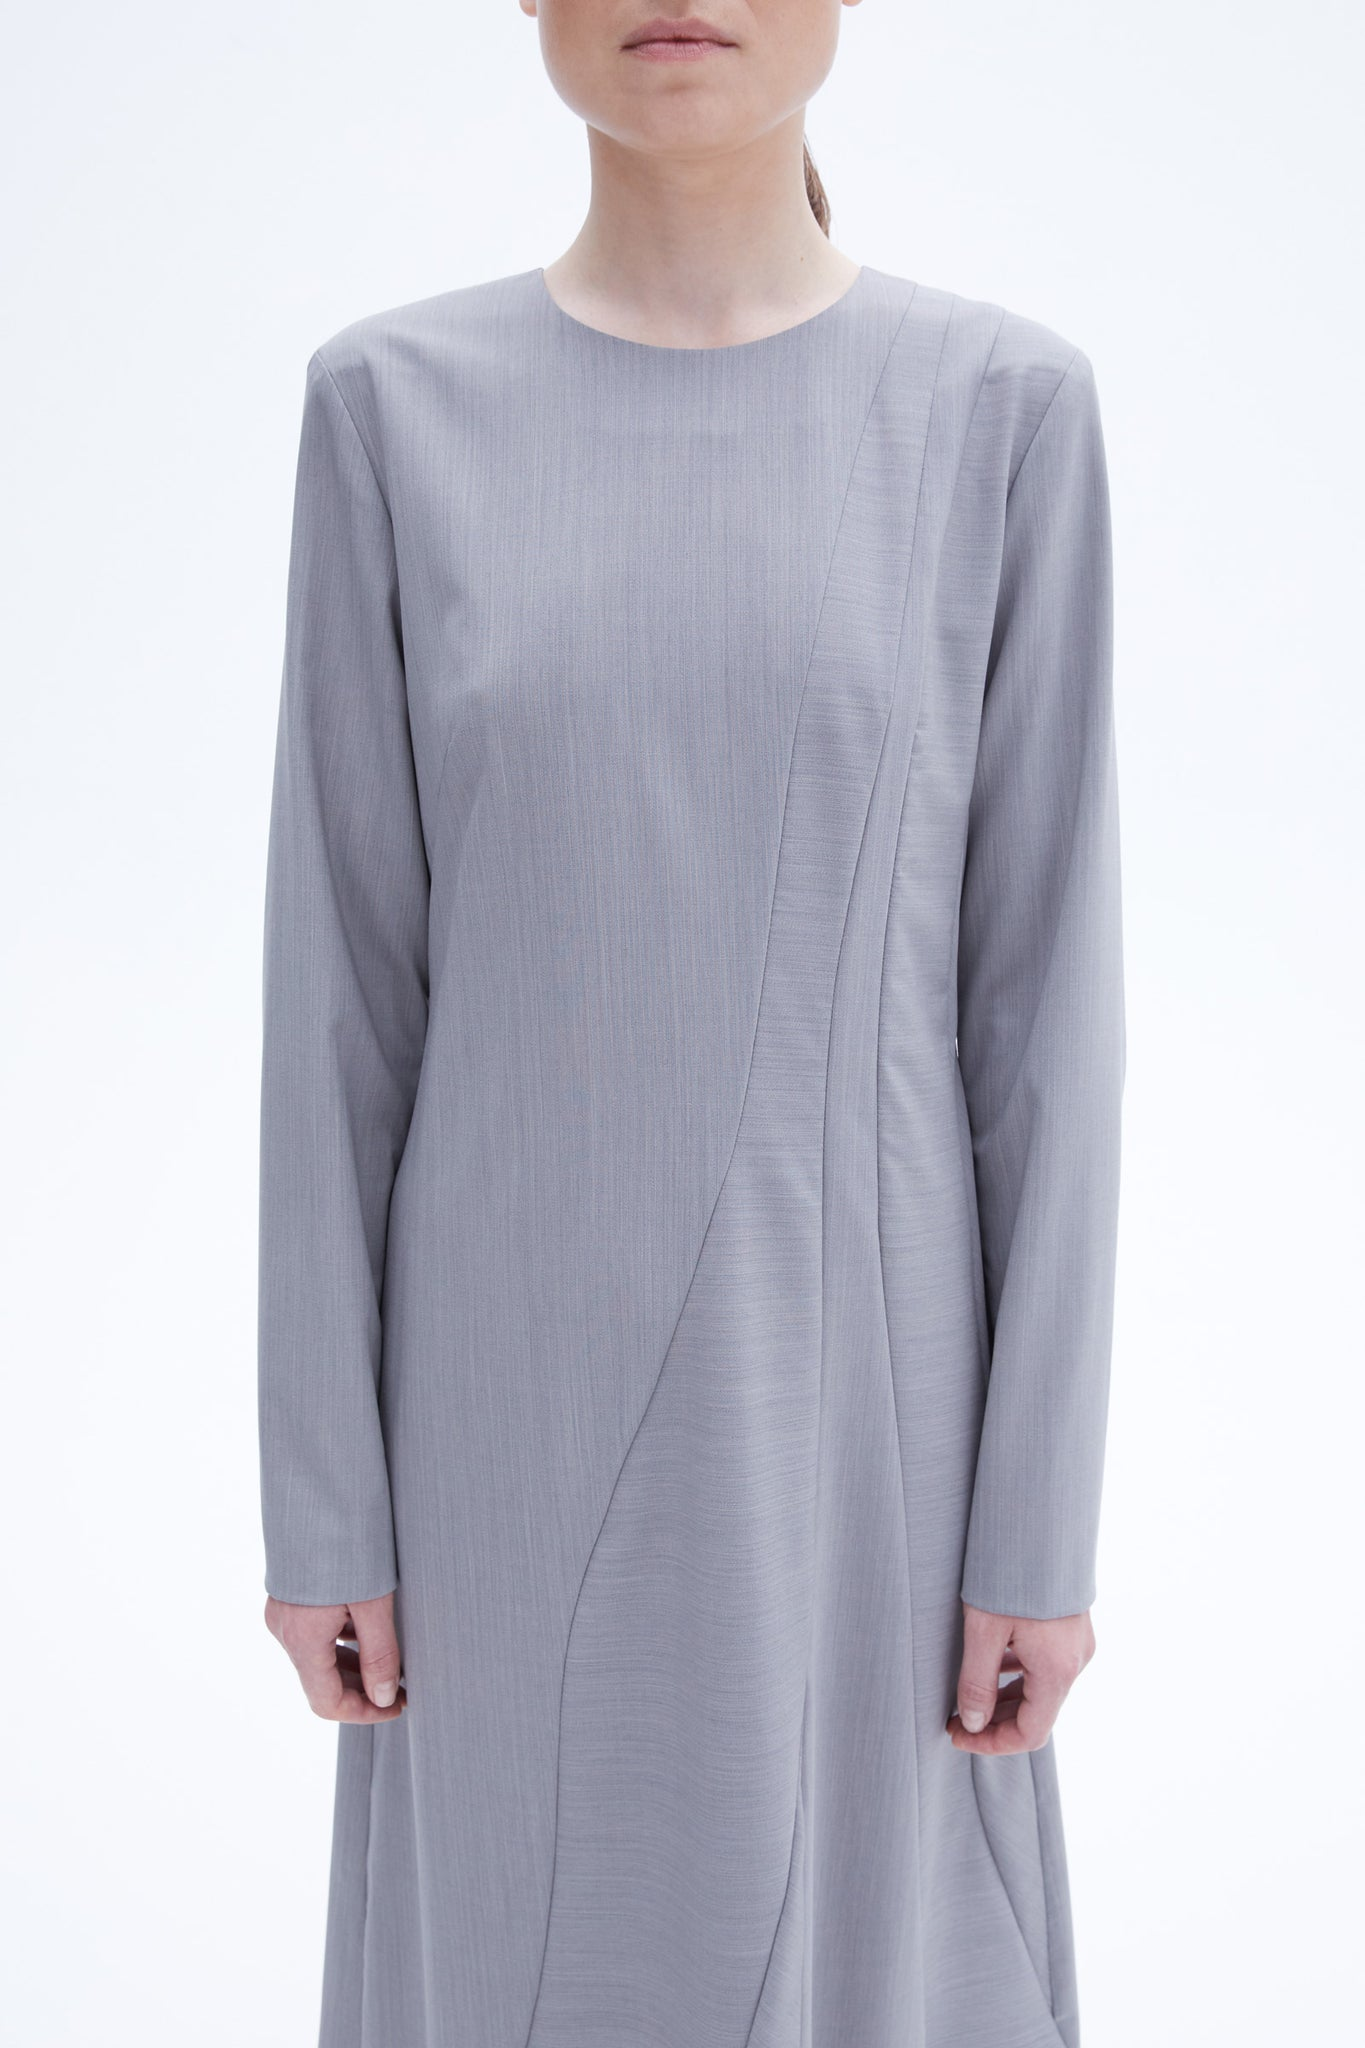 Arizona dress grey